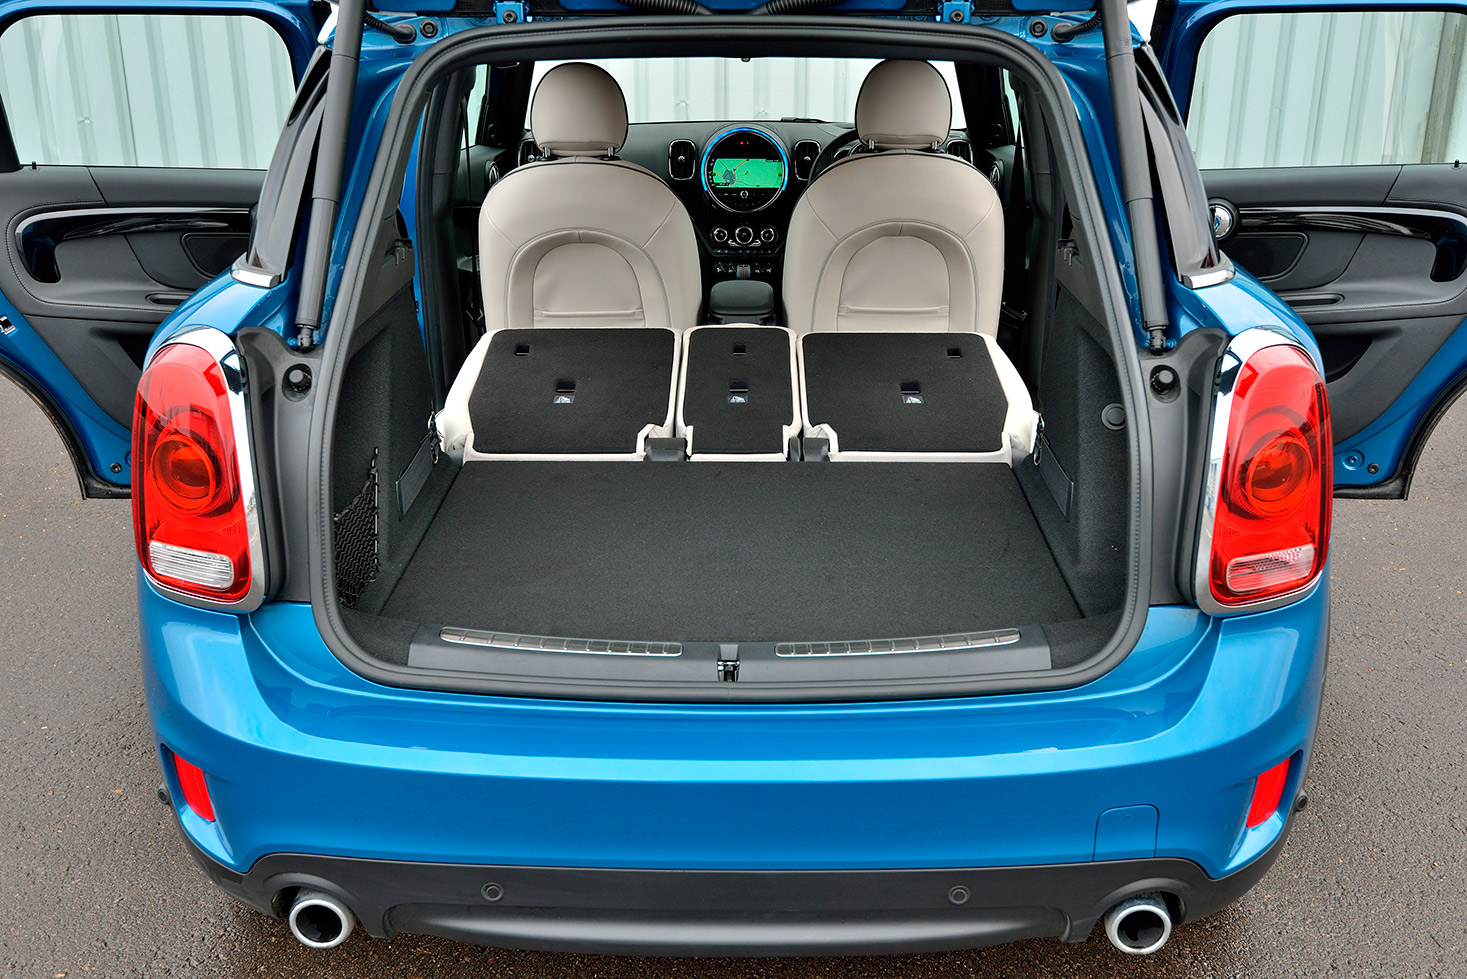 mini-countryman-303.jpg